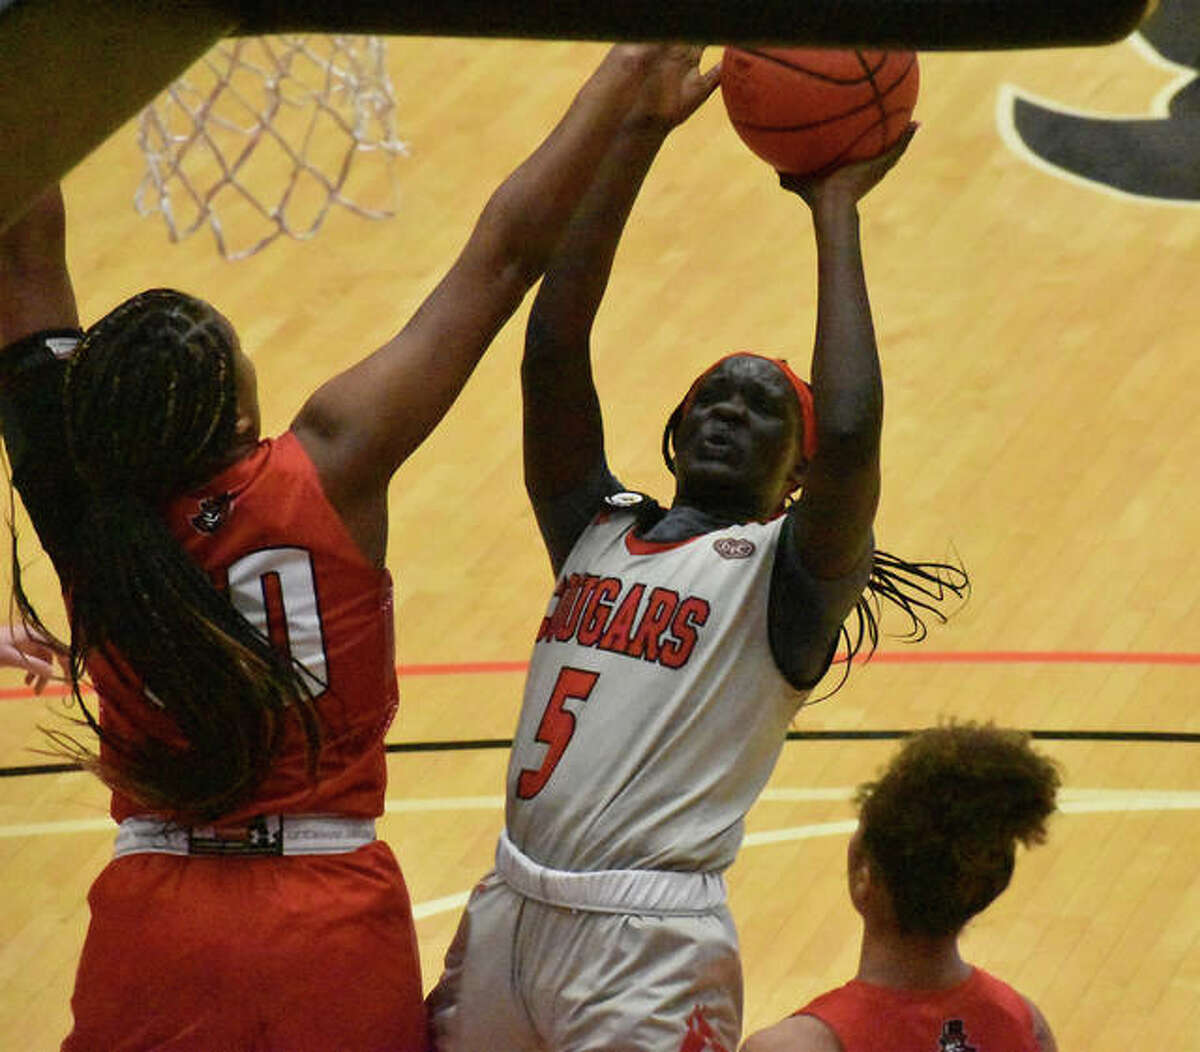 SIUE forward Ajulu Thatha goes up for a contested shot in the lane in the second quarter.